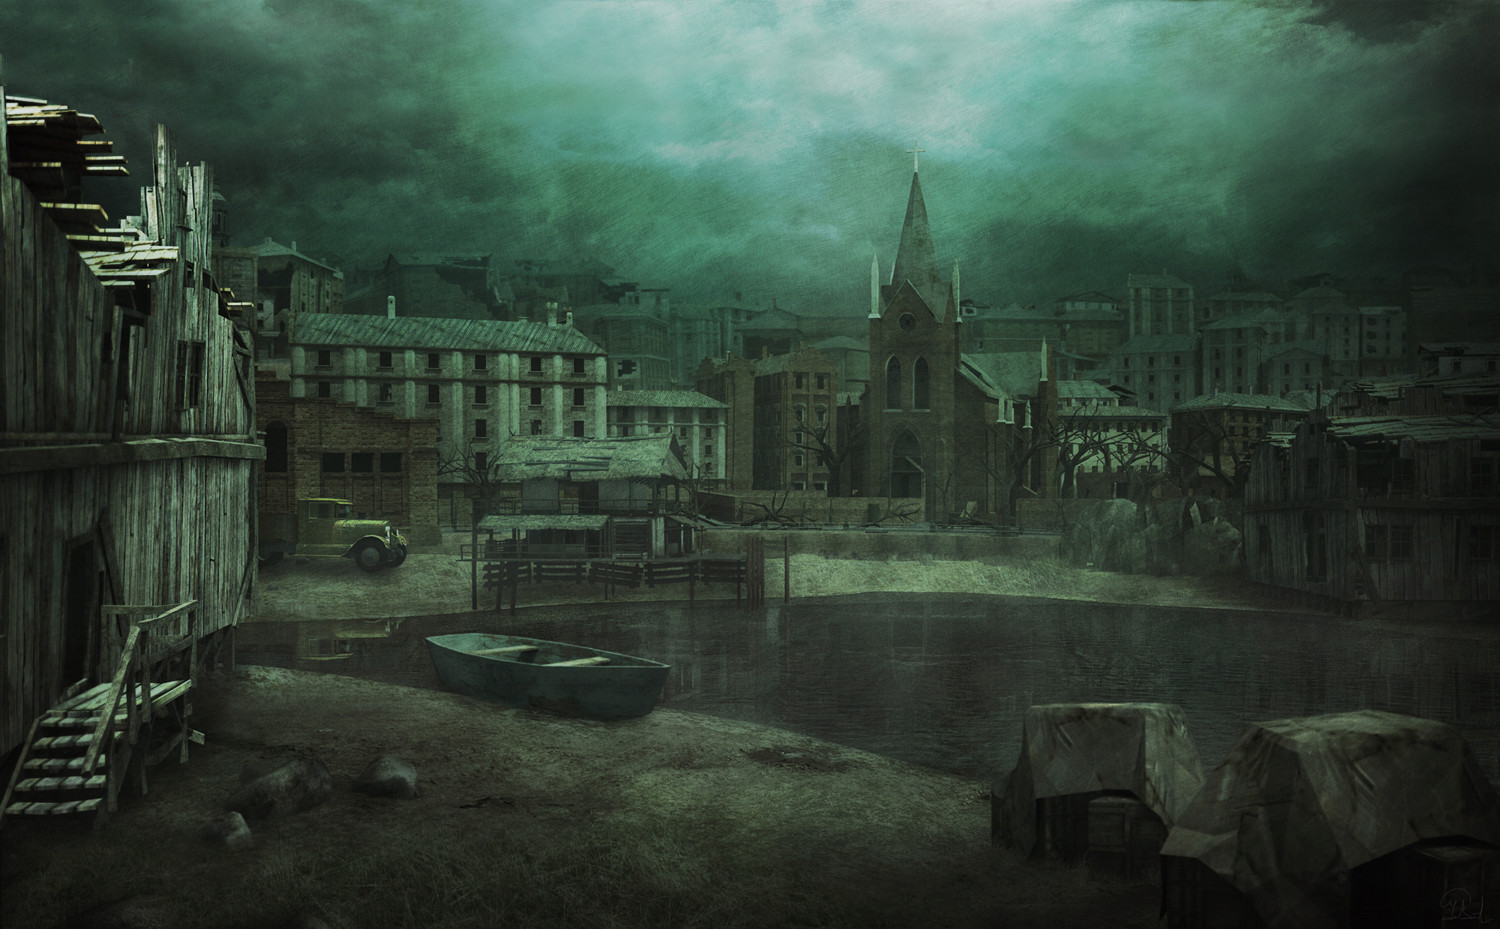 mihail-bila-innsmouth-waterfront-small.jpg